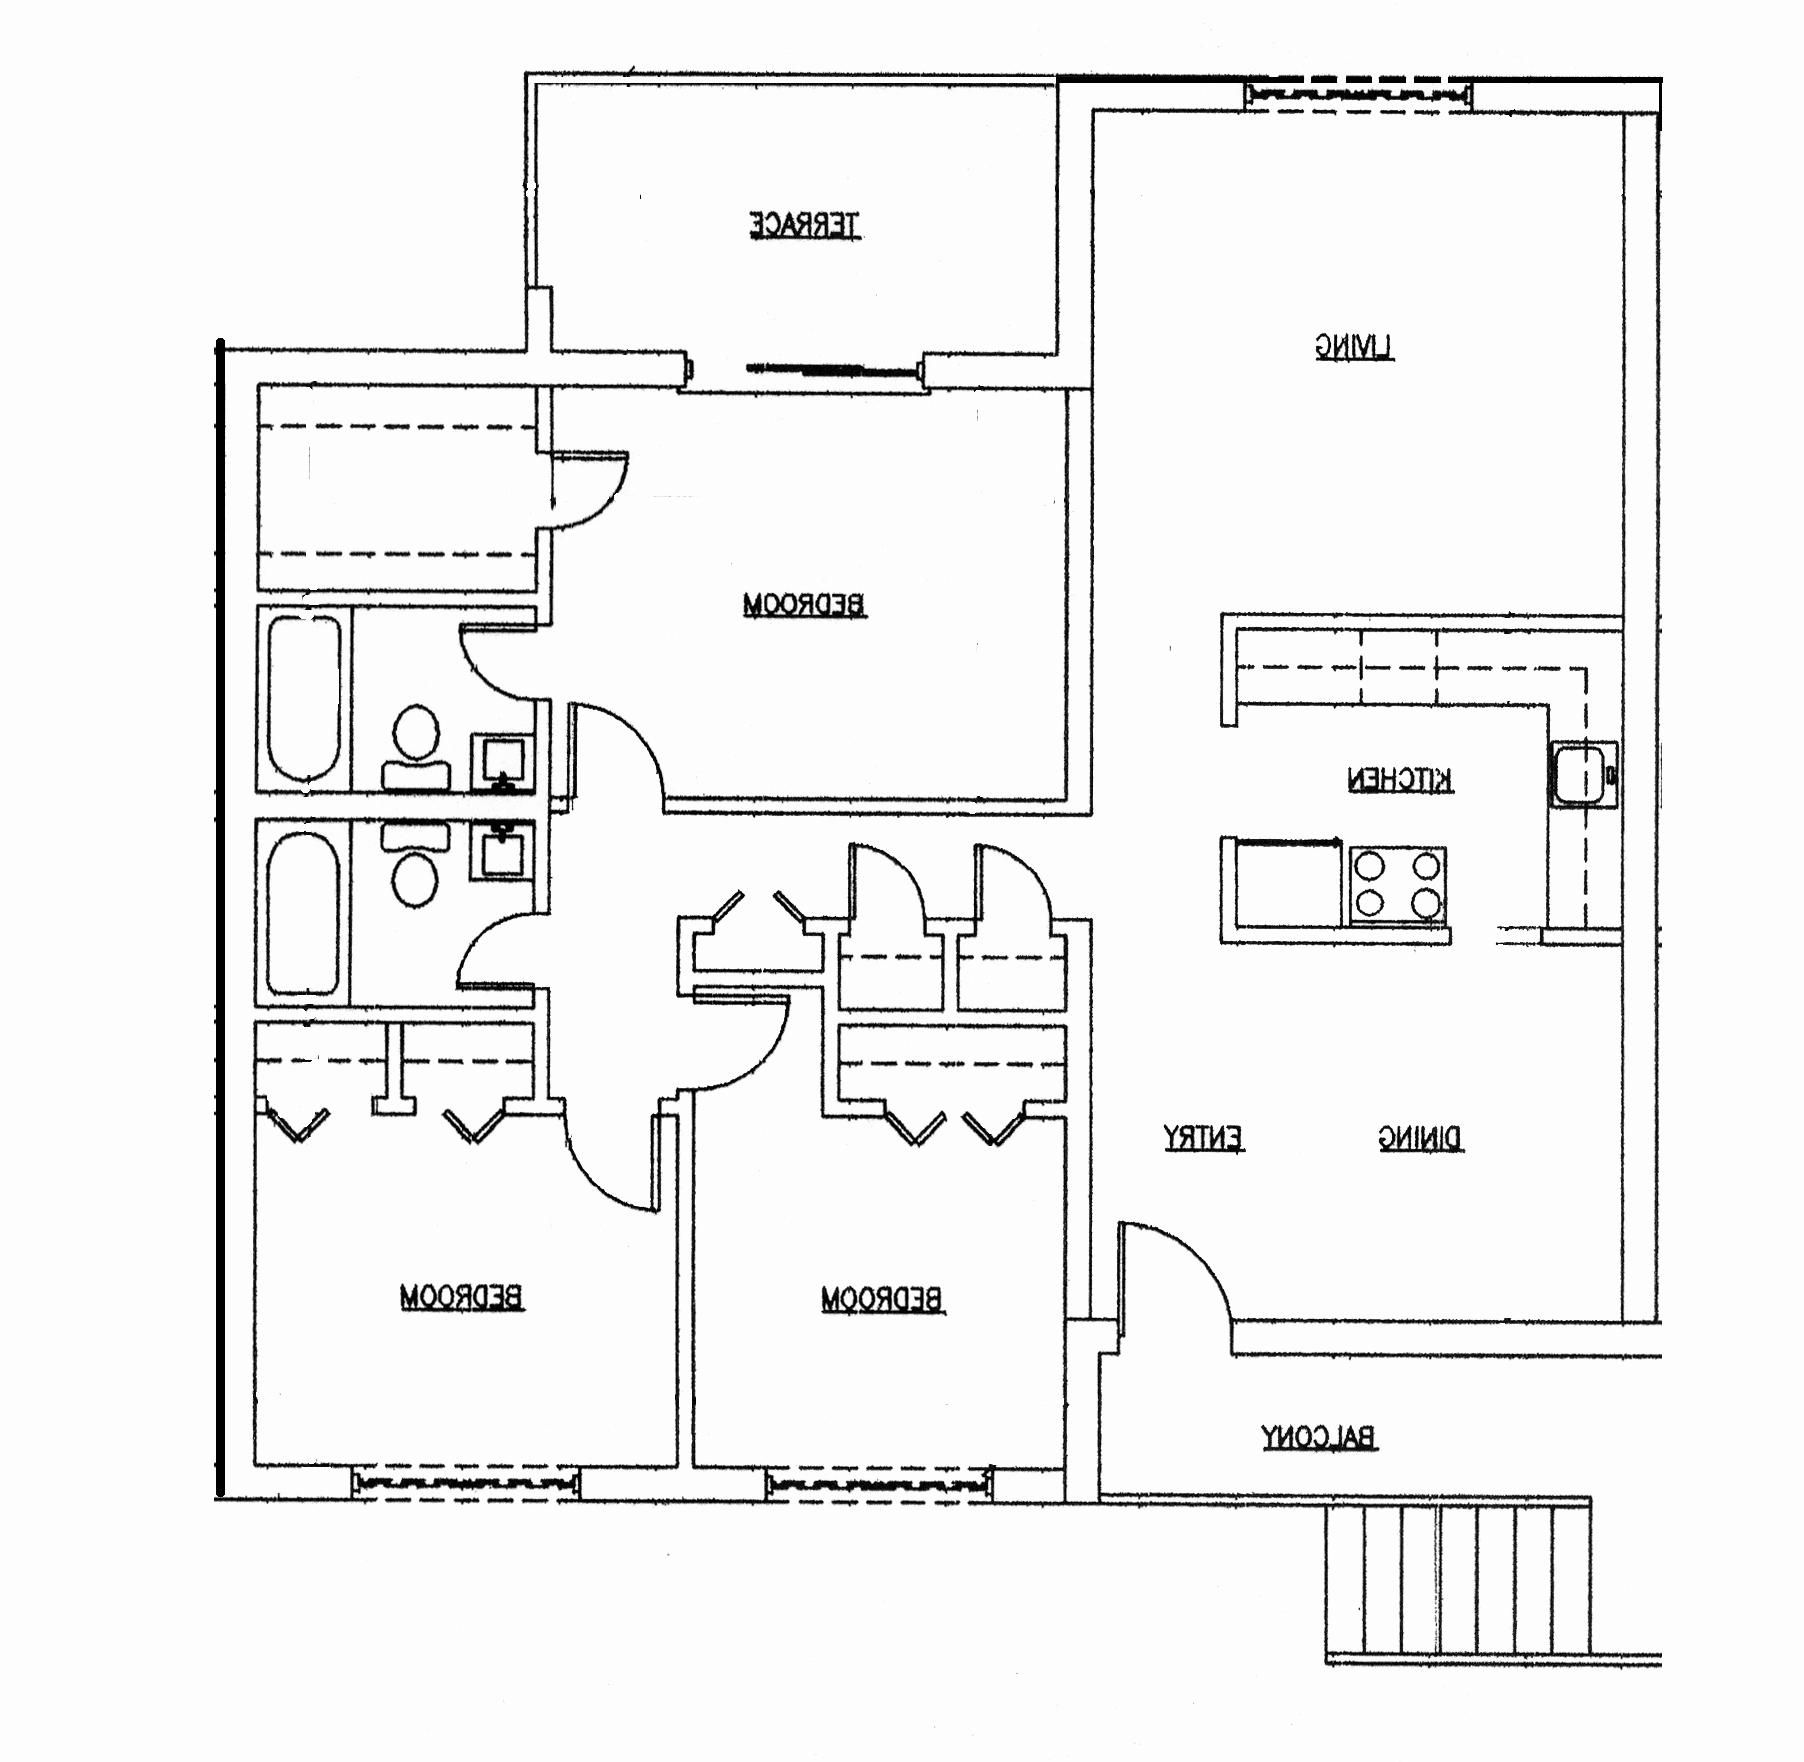 Epic Home Architecture: Bedrooms Floor Plans Story Bdrm Basement The Two pertaining to Small 5 Bedroom House Plans